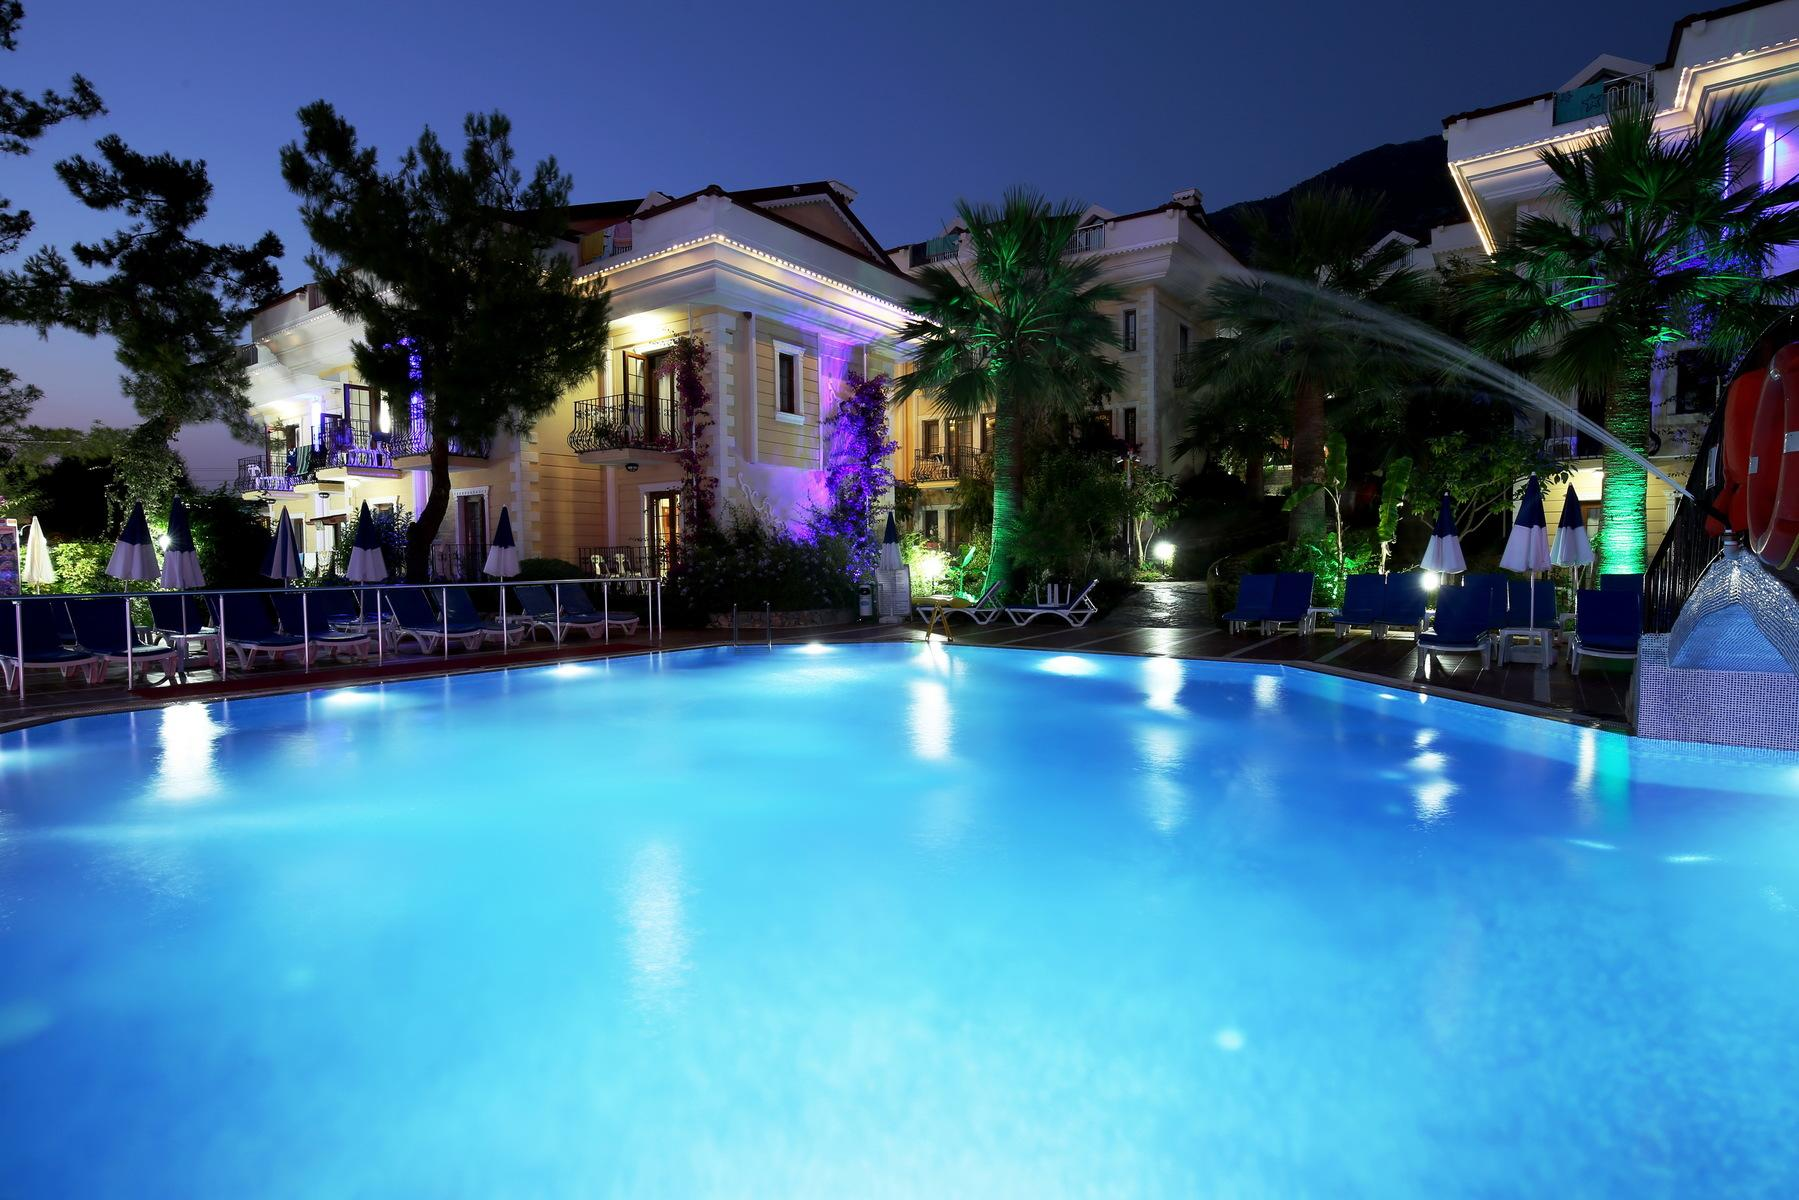 Yel Holiday Resort in Ovacik, Dalaman, Turkey